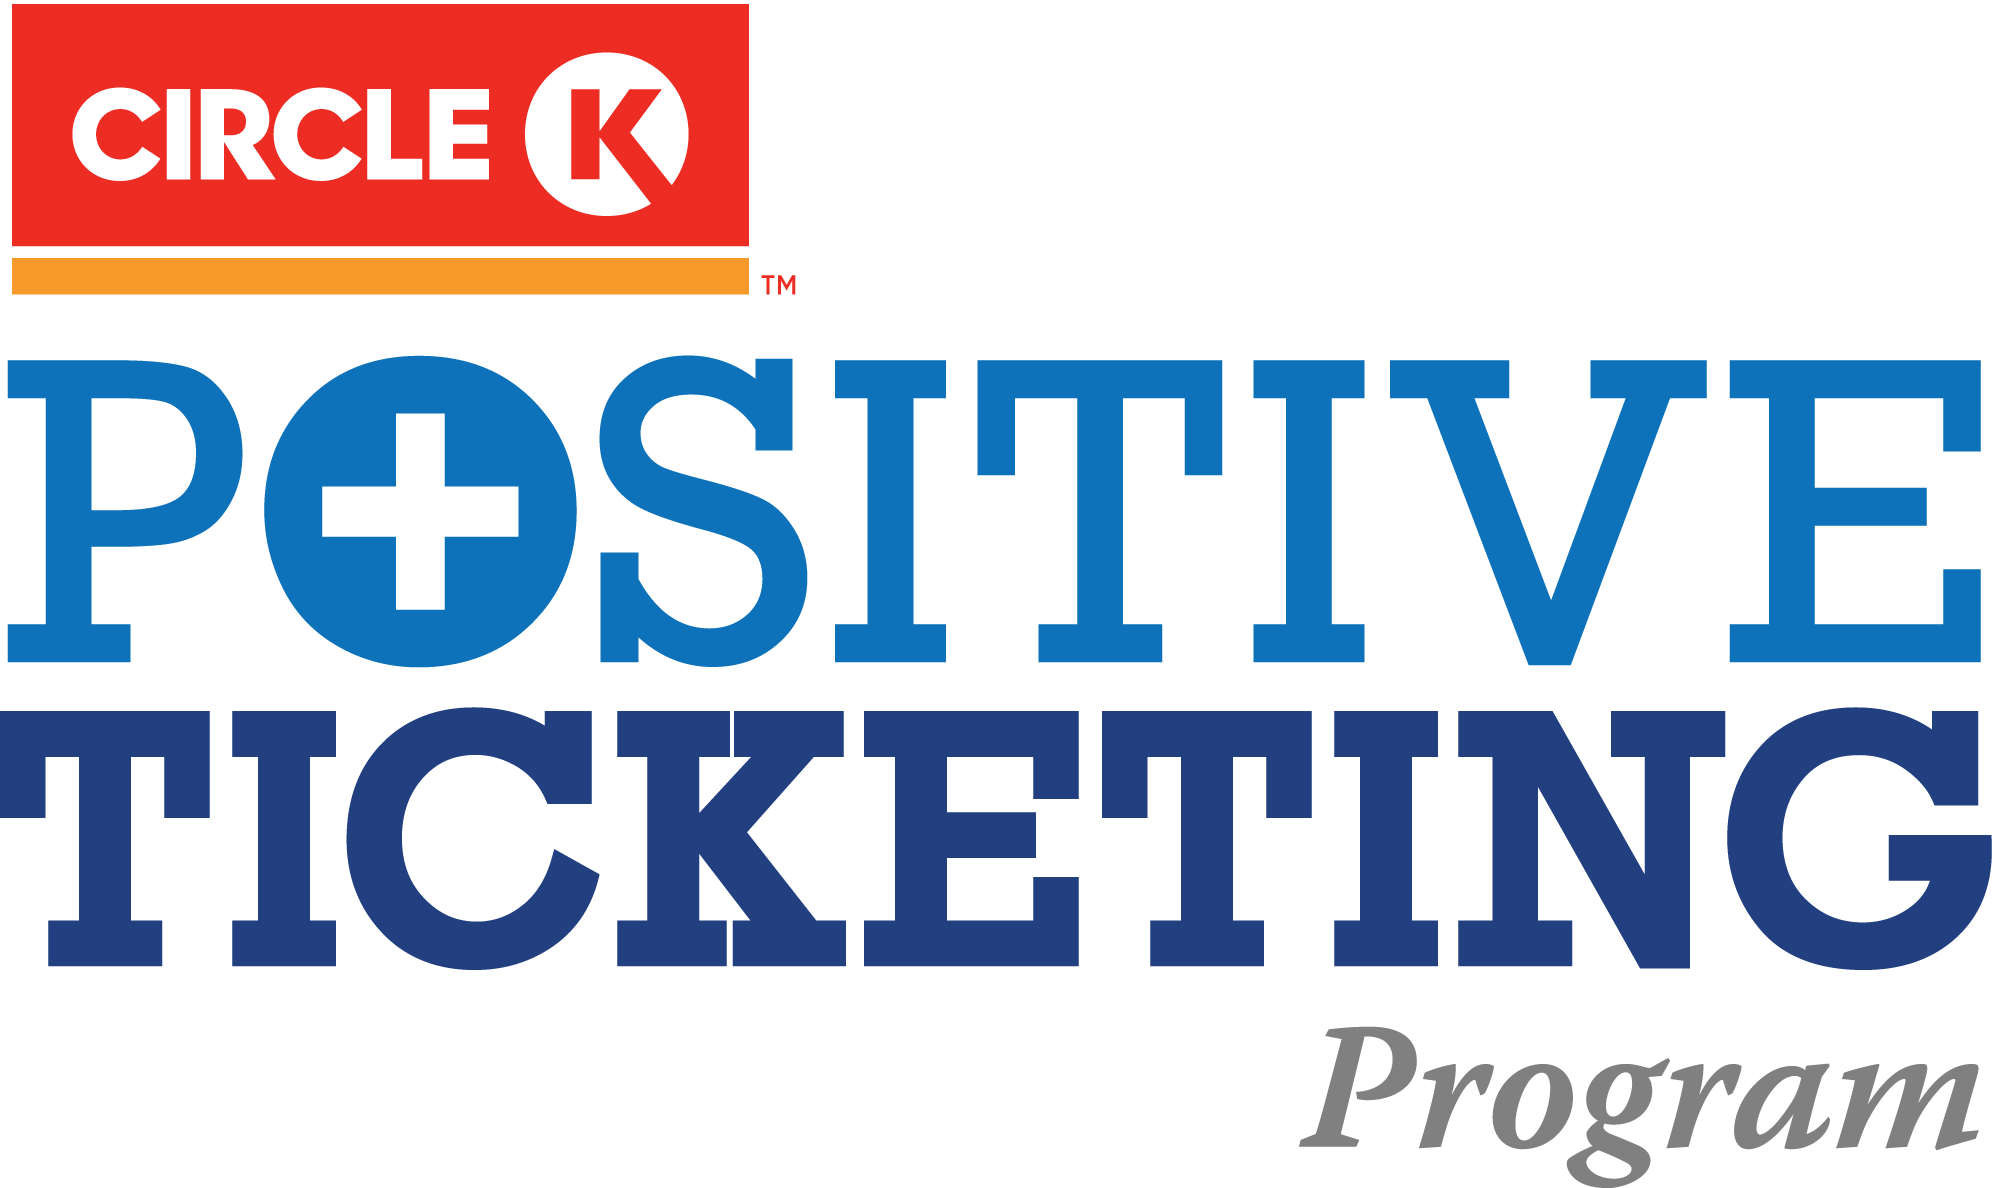 Positive Ticketing Program